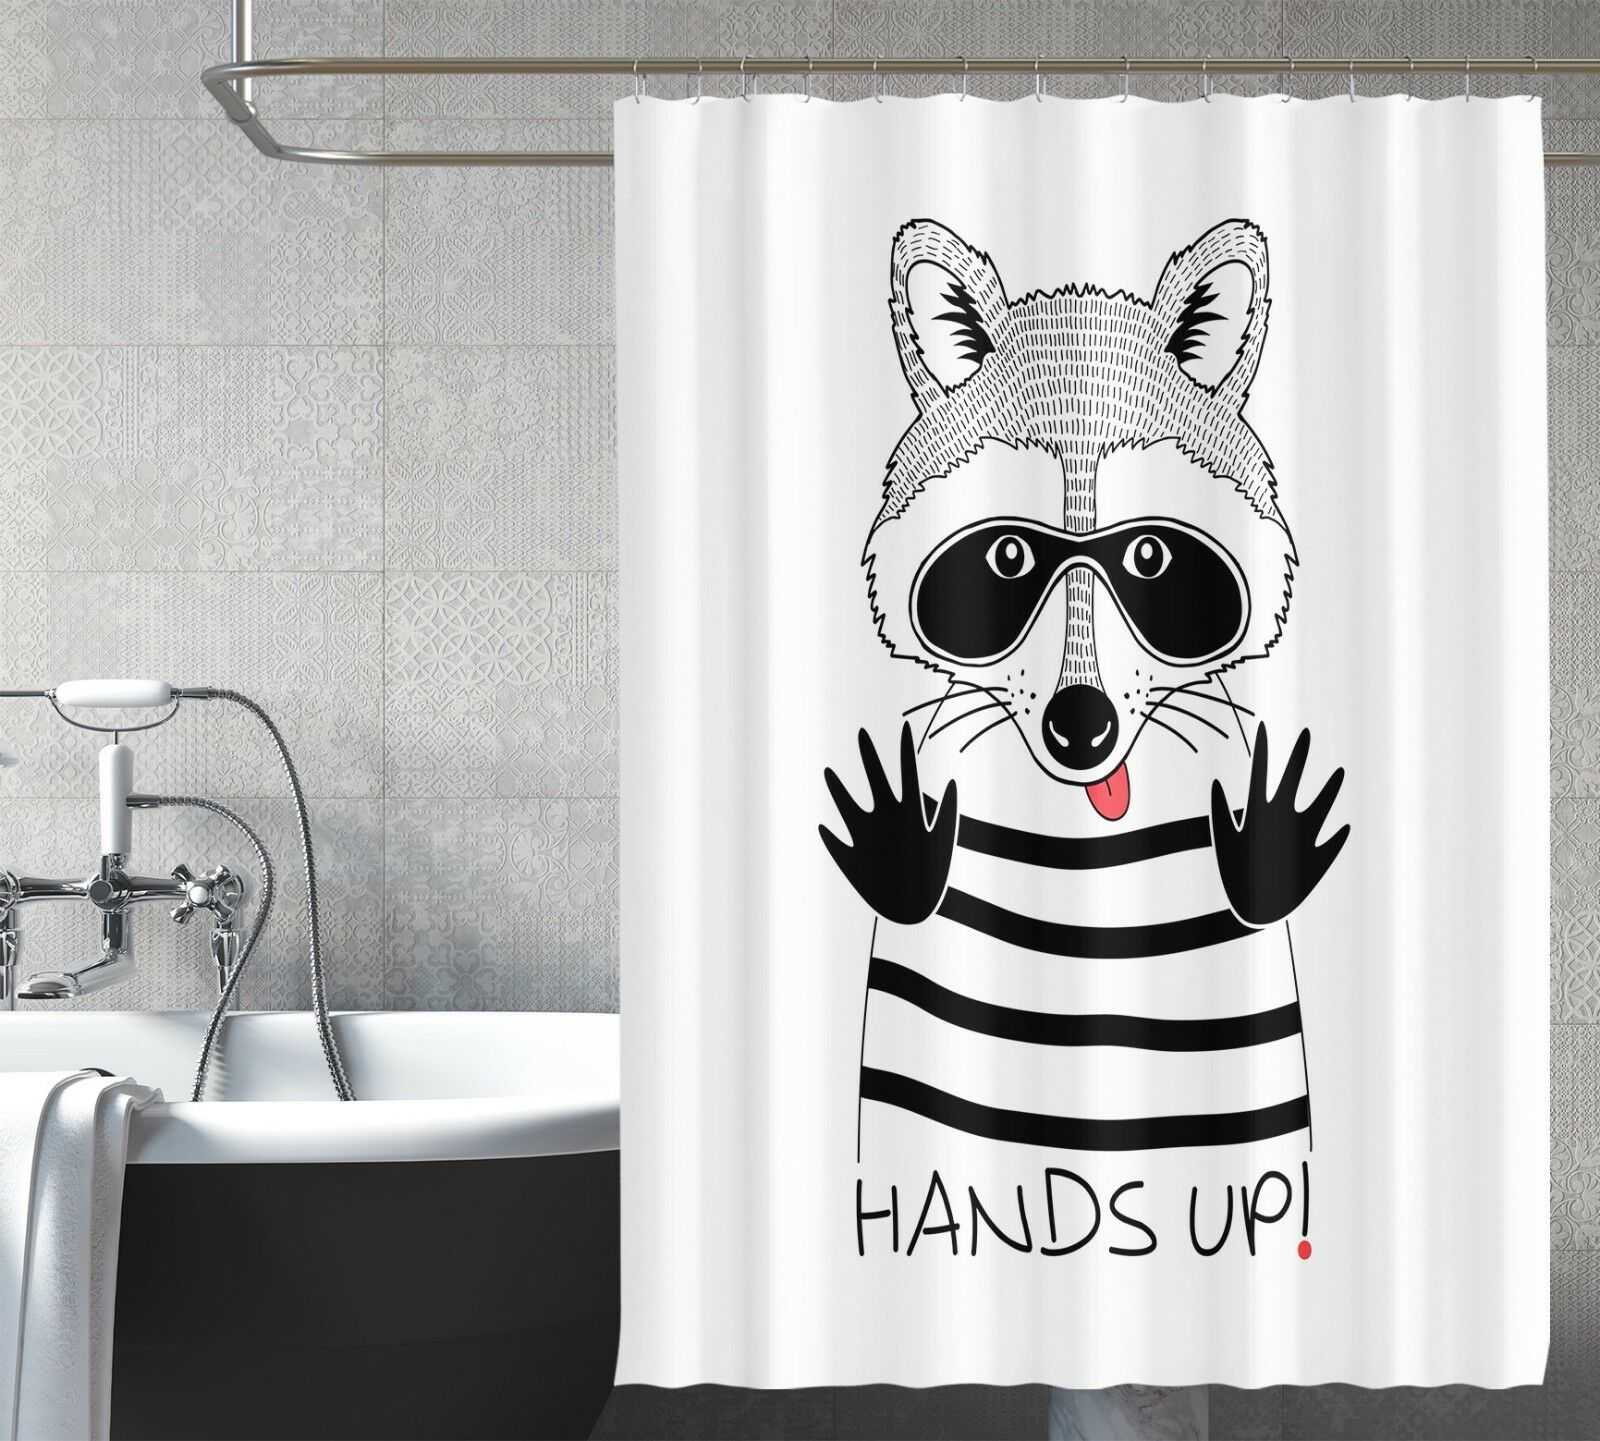 3D Little Raccoon 56 Shower Curtain Waterproof Fiber Bathroom Windows Toilet 8bea35